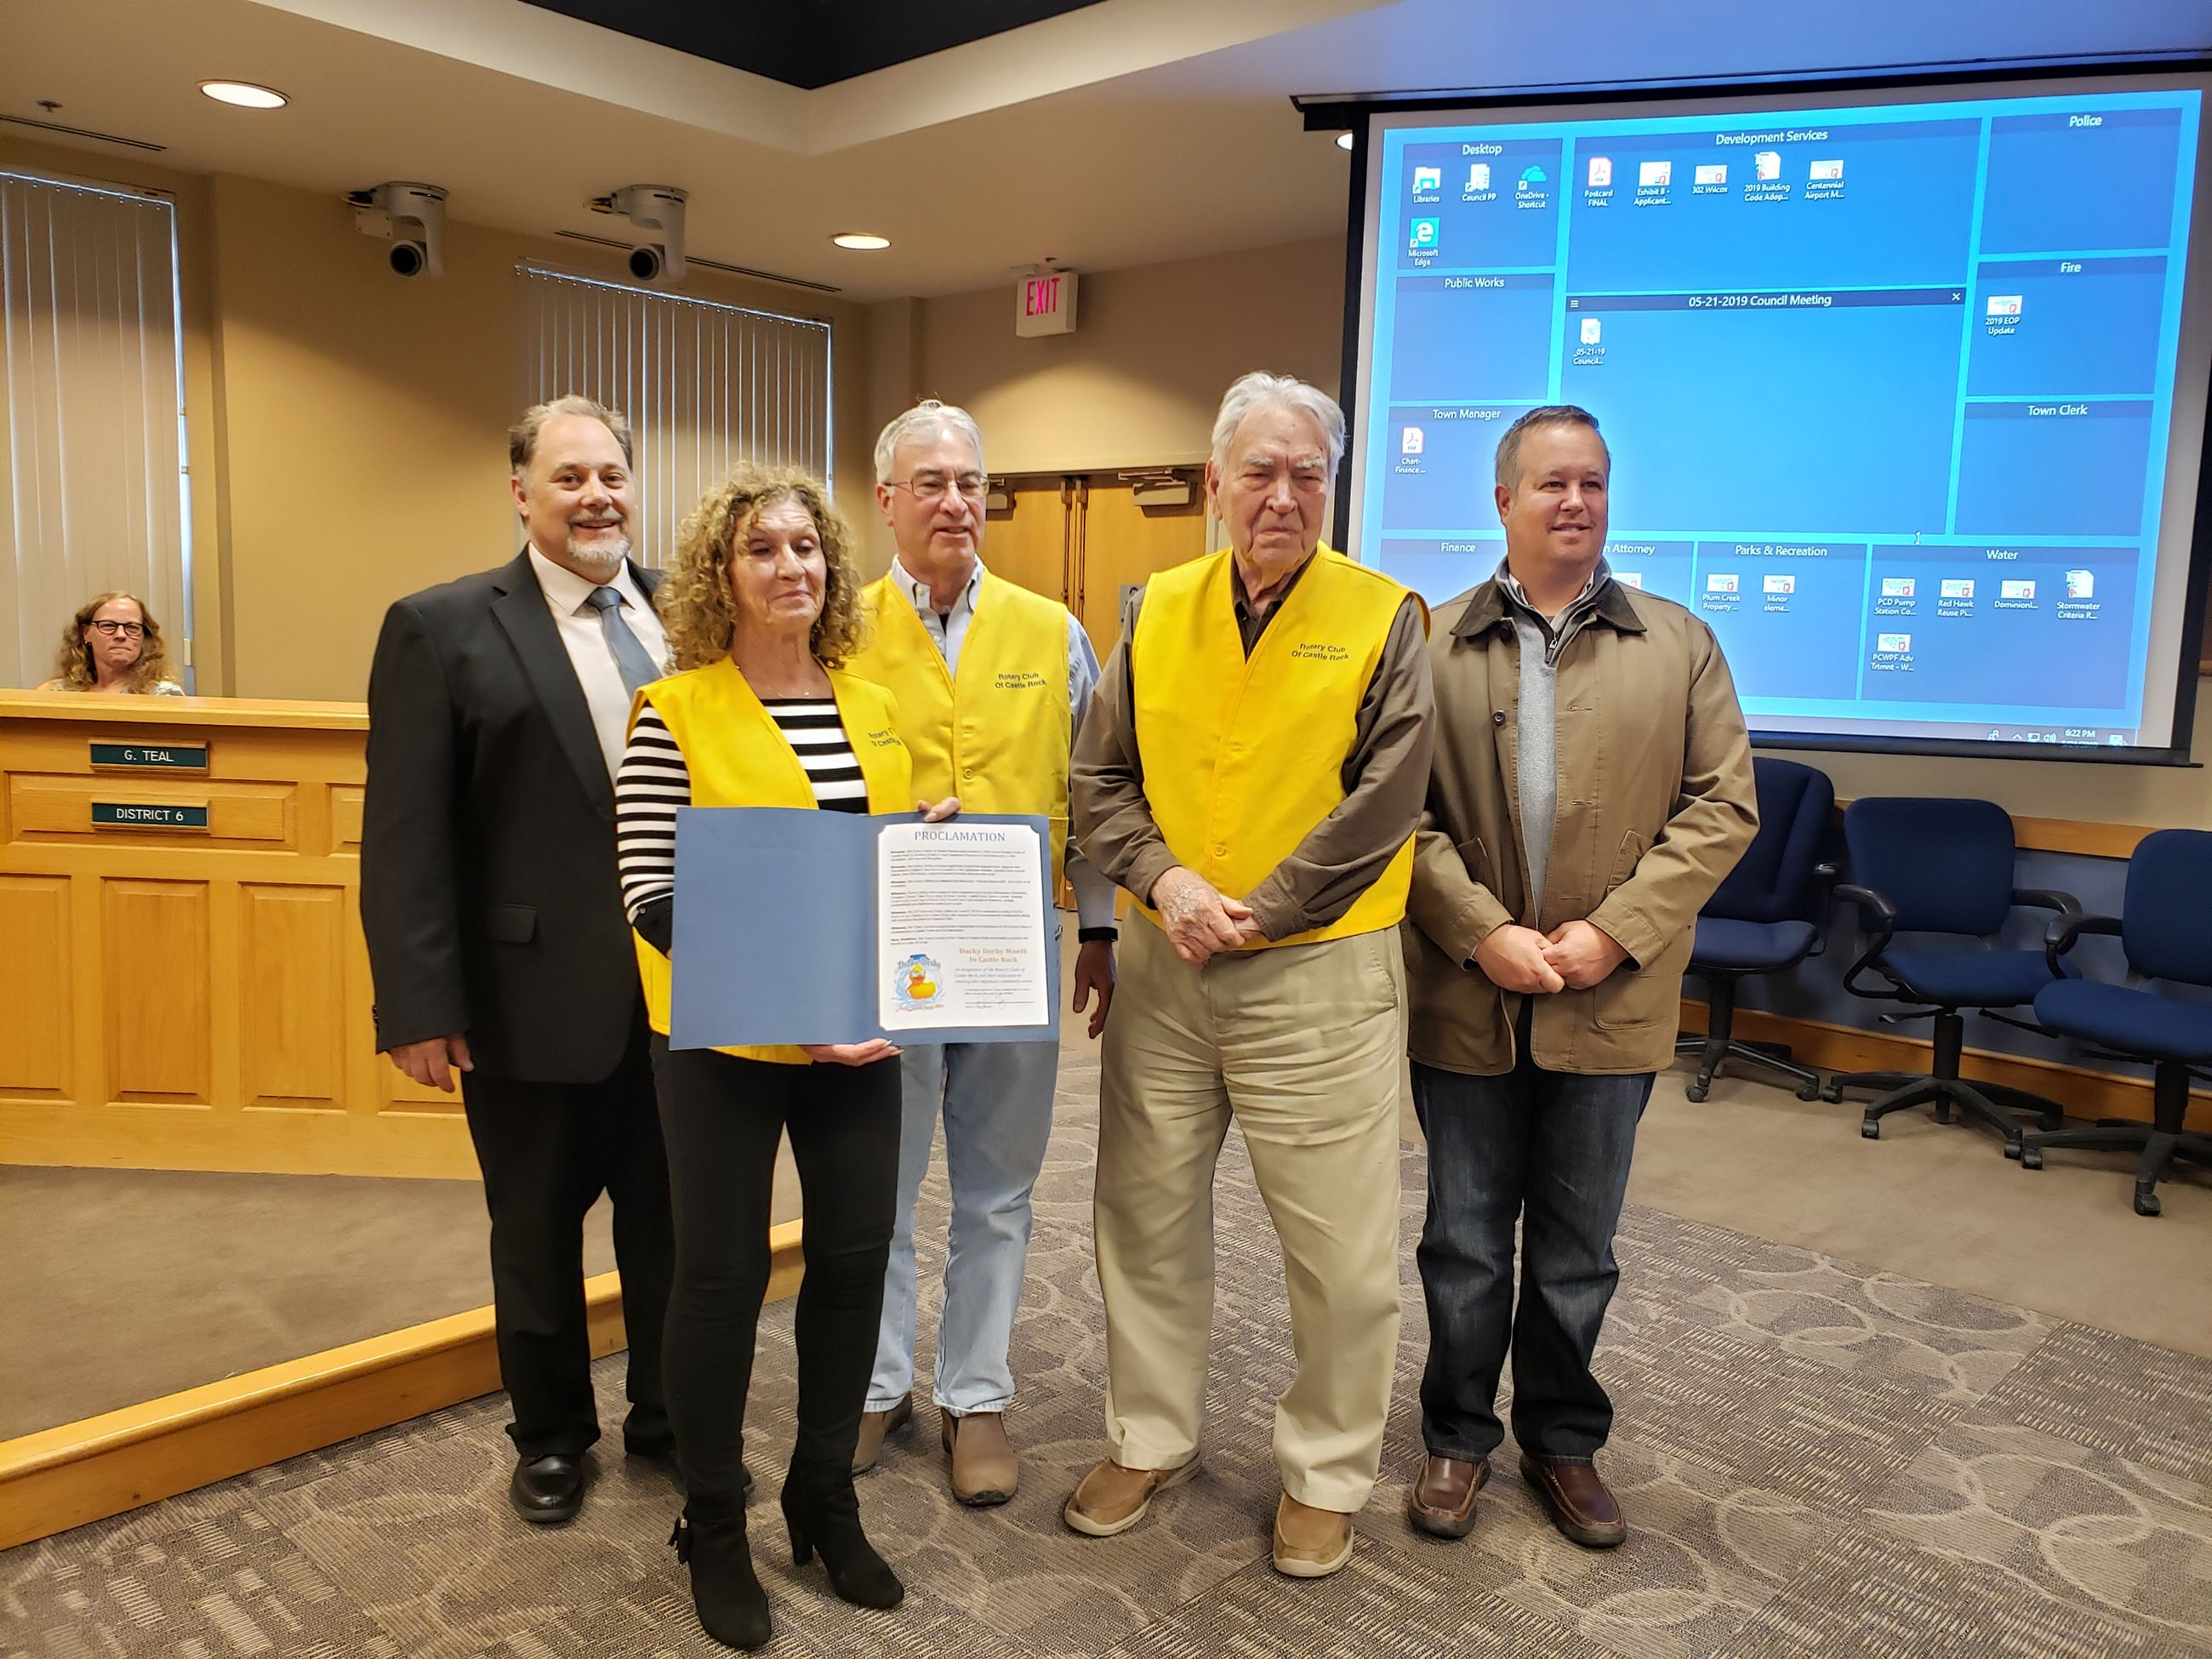 Duck Derby Month proclamation with Rotary Club and Mayor Gray